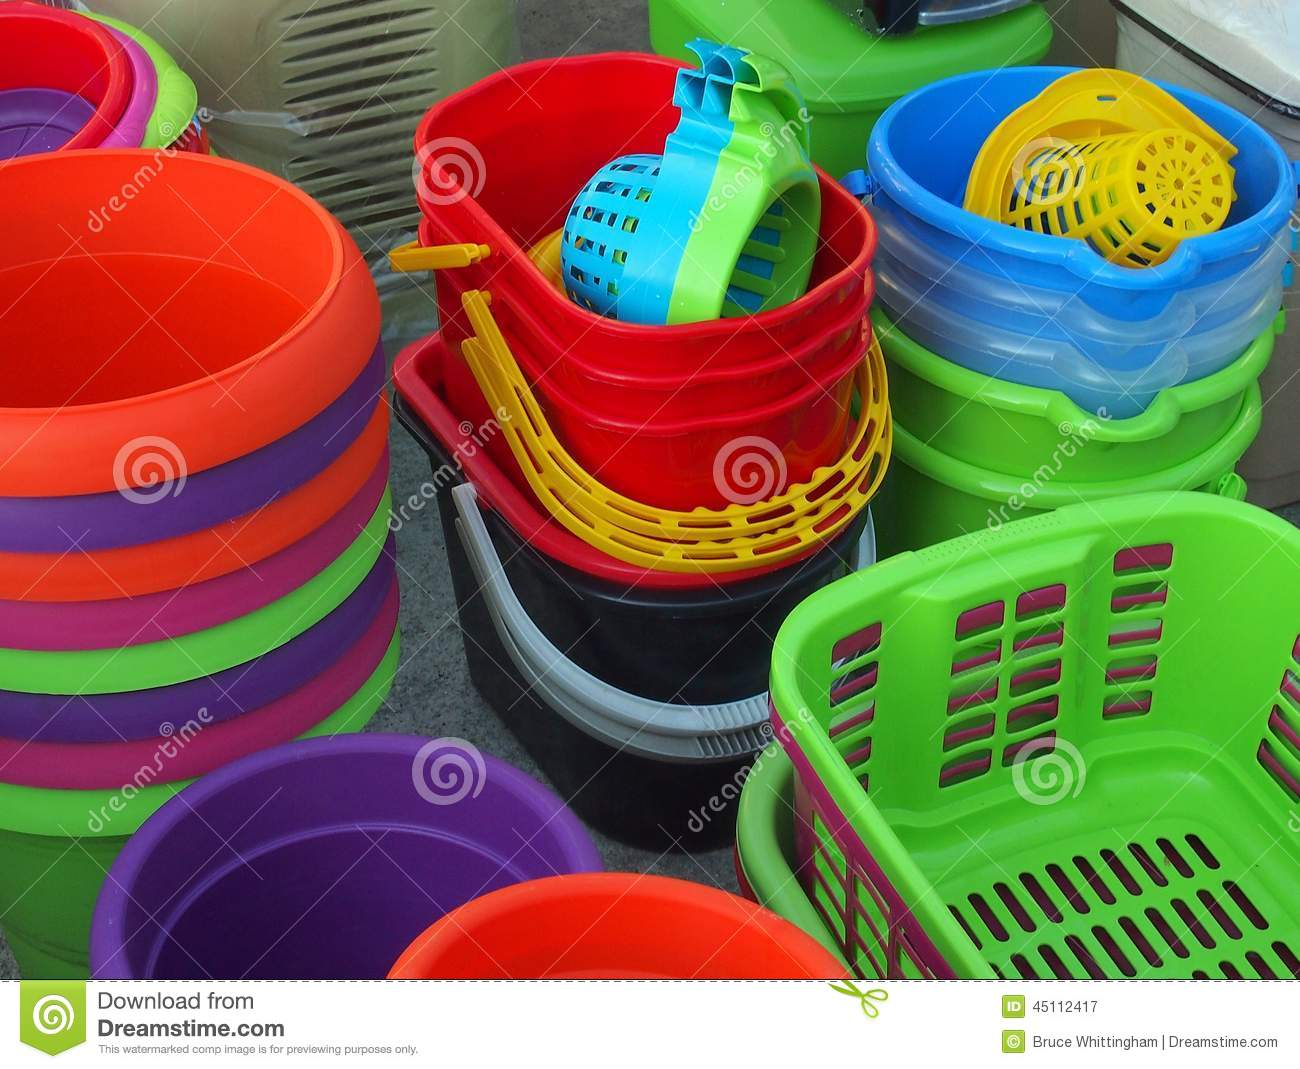 Colorful Plastic Buckets and Baskets, Greek Street Market